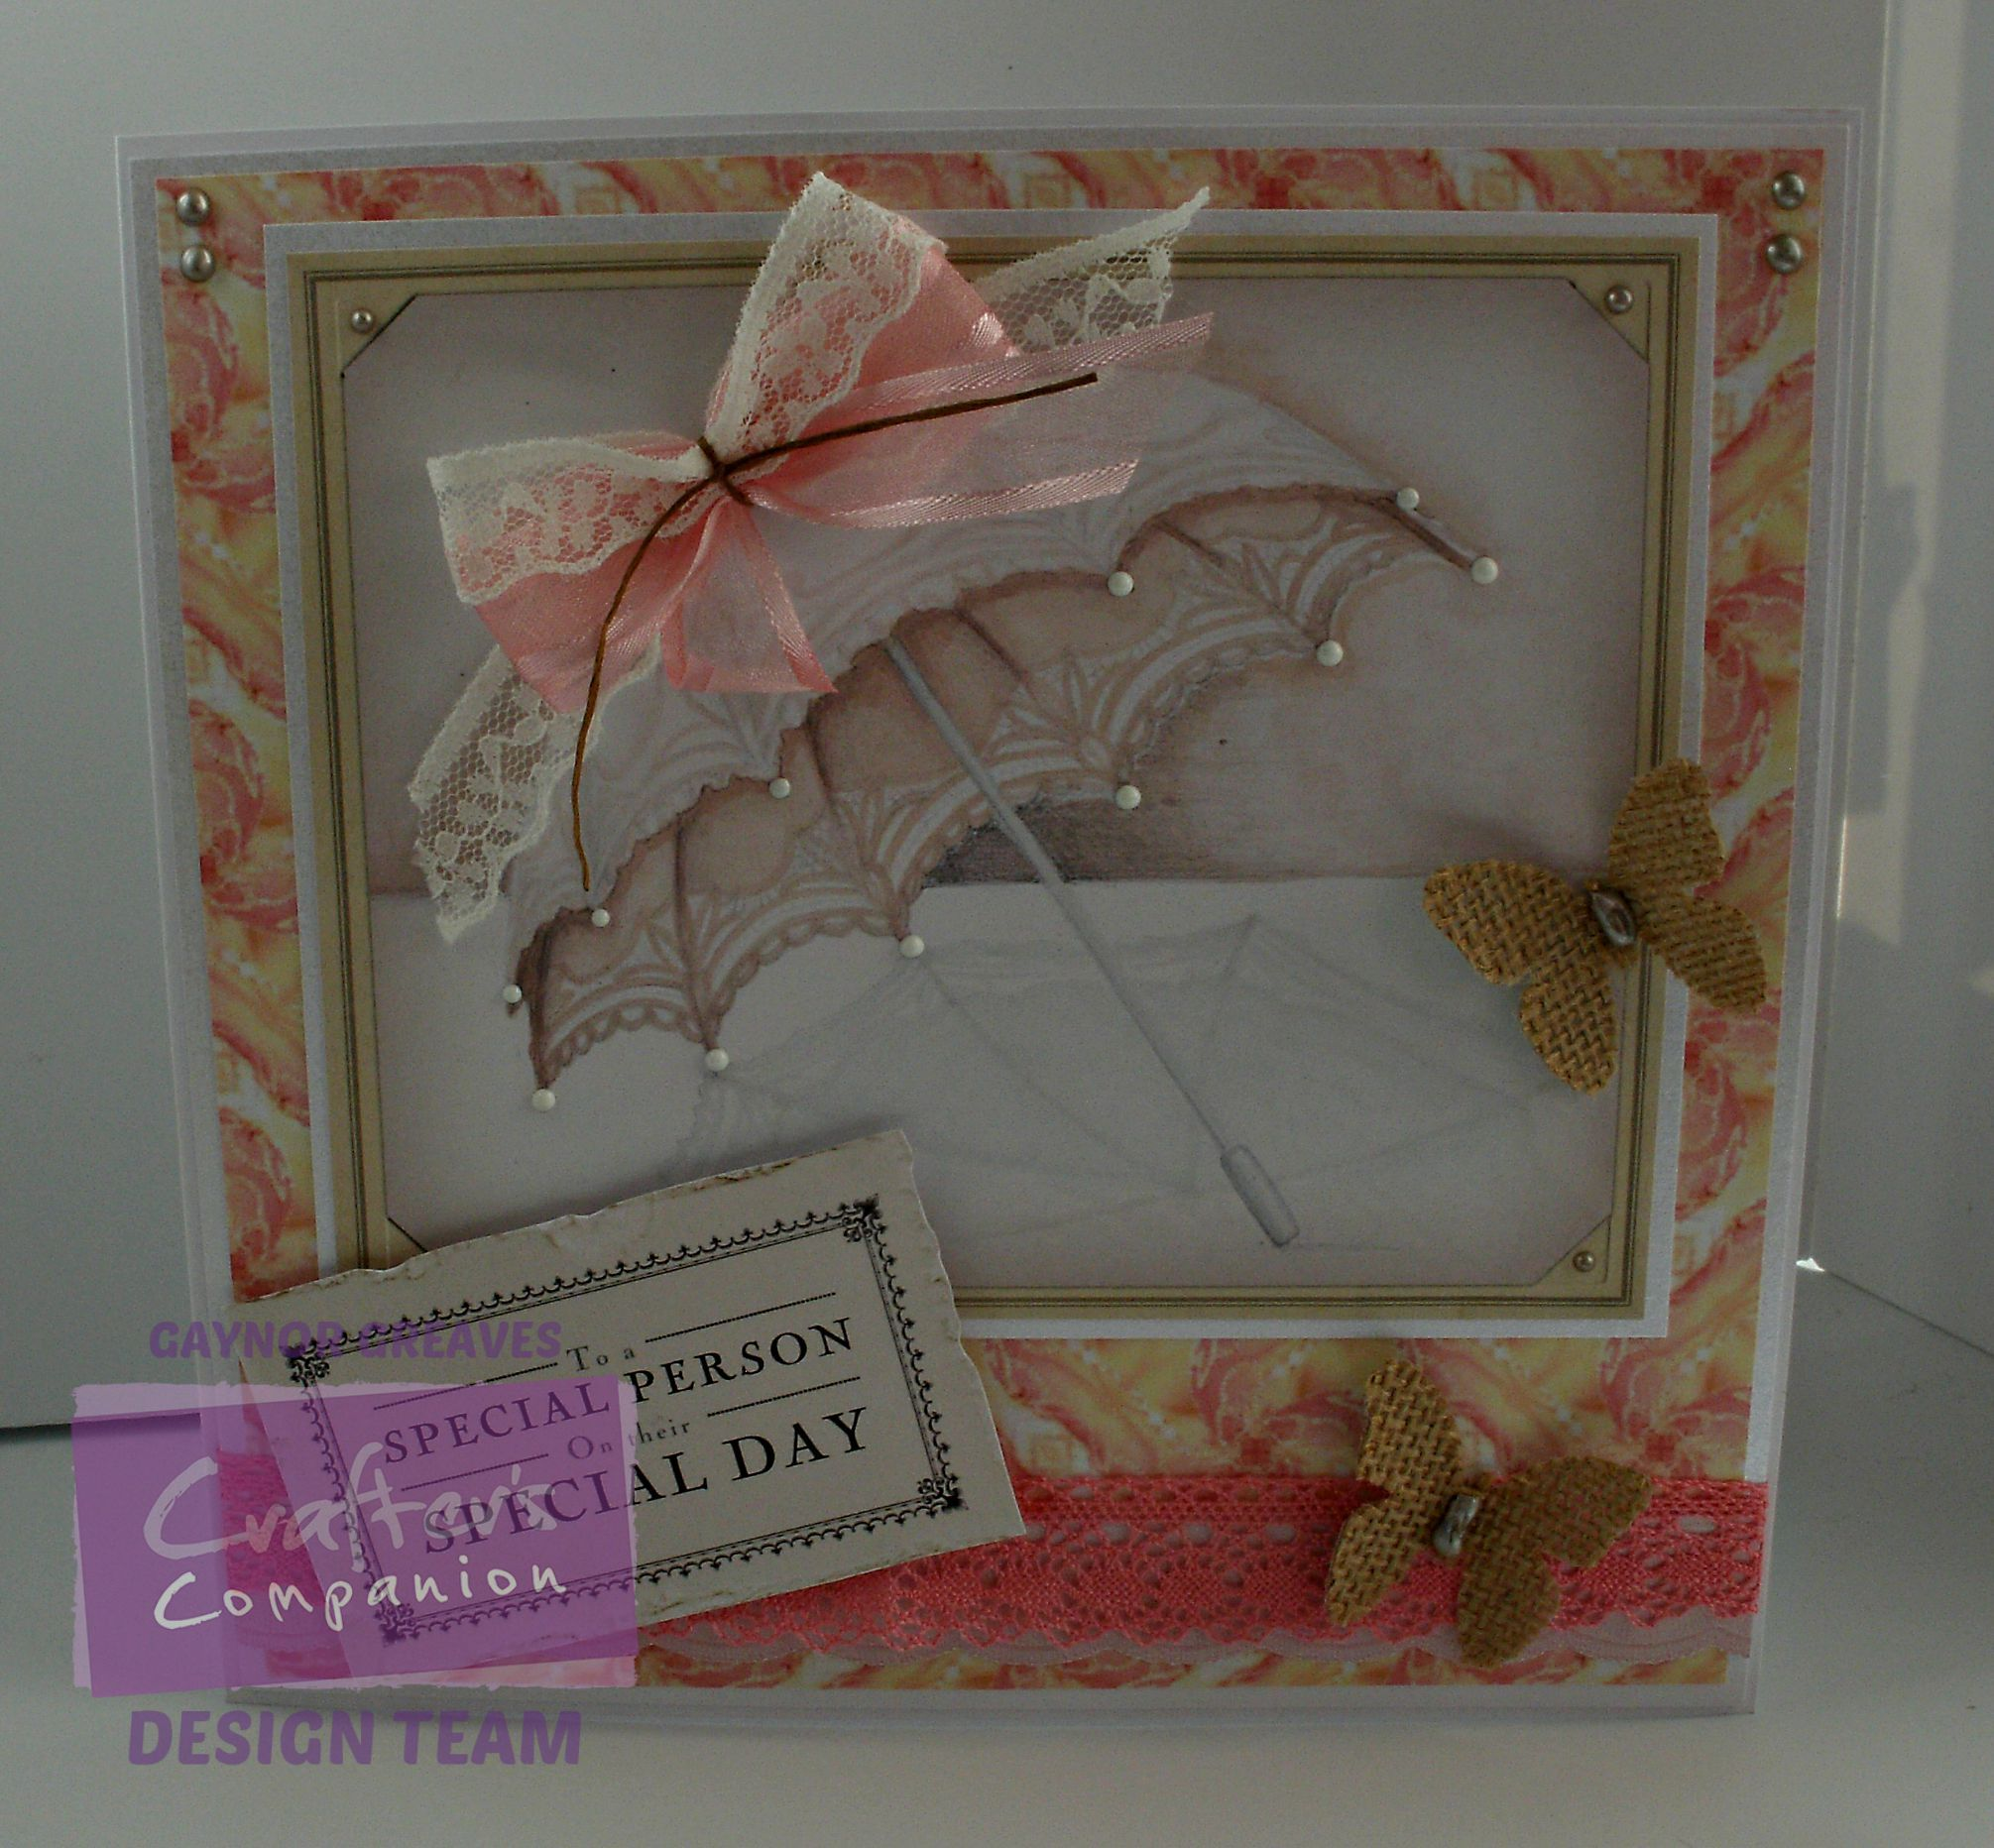 Gaynor Greaves - Downton Abbey - CD1 Topper Design 7 - CD1 - Design Paper 5 Lady Rose MacClare - CD2 - Trims design 12 - CD2 Sentiment design 1 - Printable Light card - Centura Pearl Hint Of Silver - Collall All Purpose, Tacky & 3D Glue Gel - #crafterscompanion #DowntonAbbey